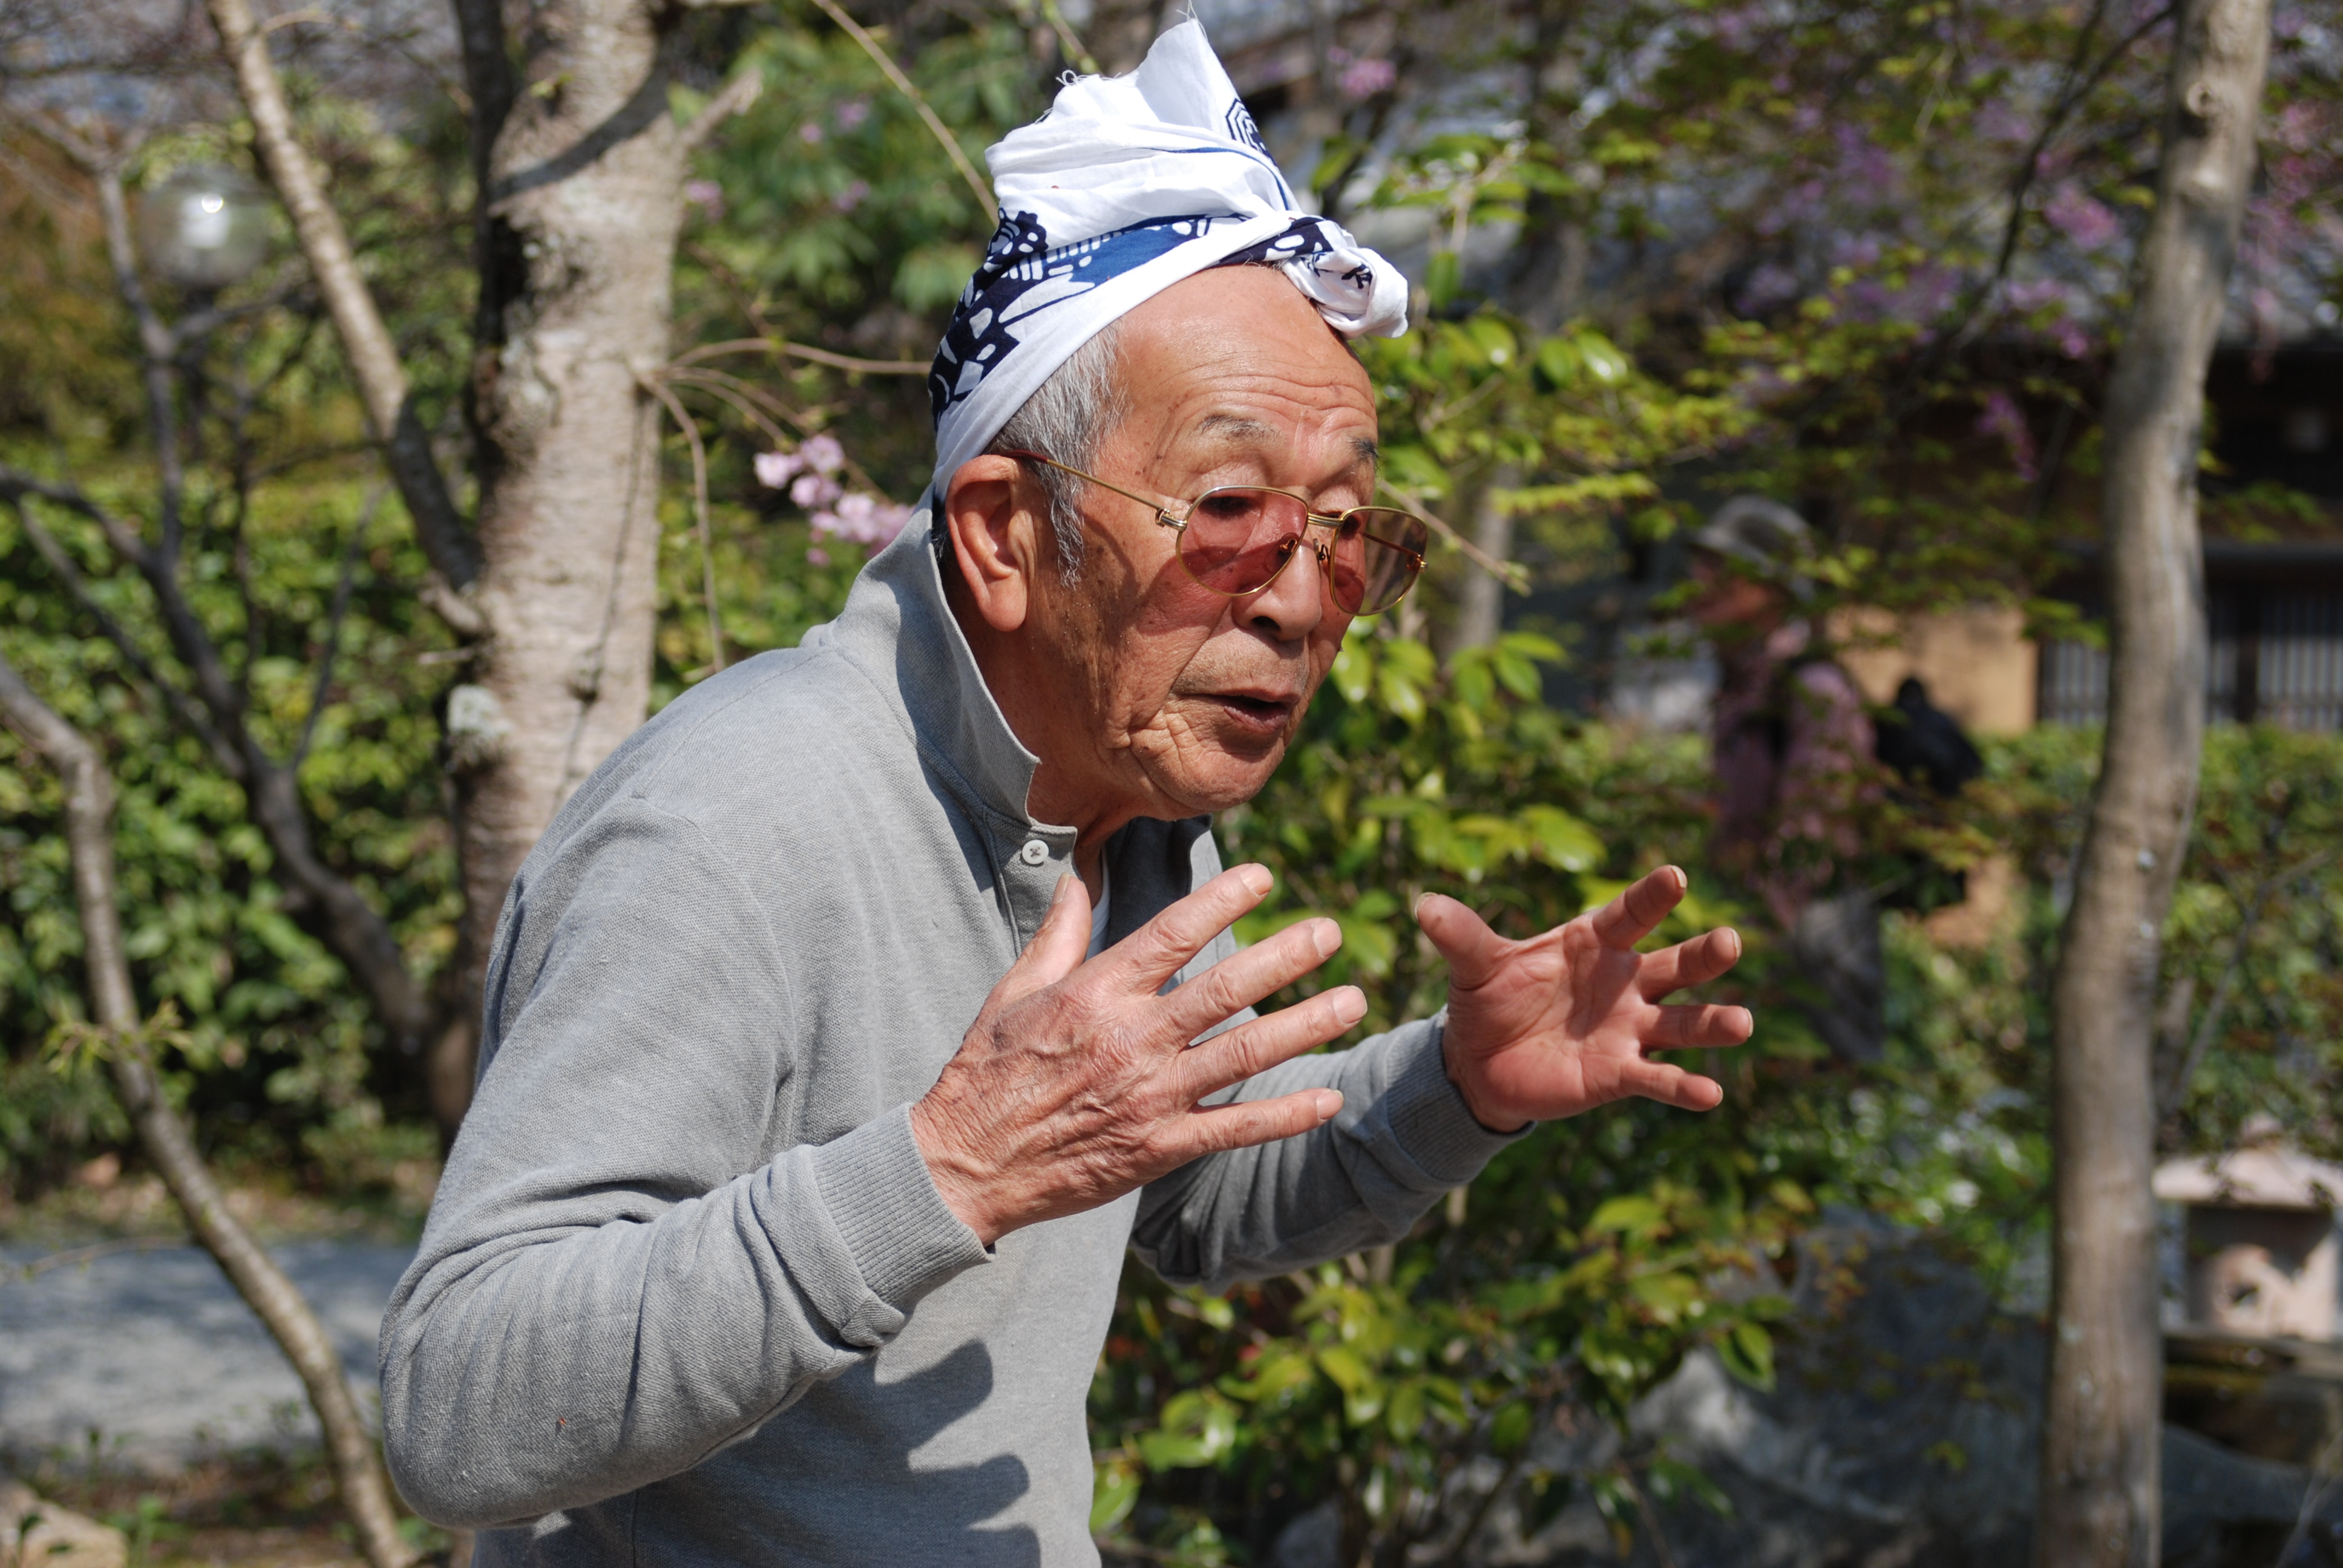 Toemon Sano is the 16th generation of cherry blossom guardain in Kyoto